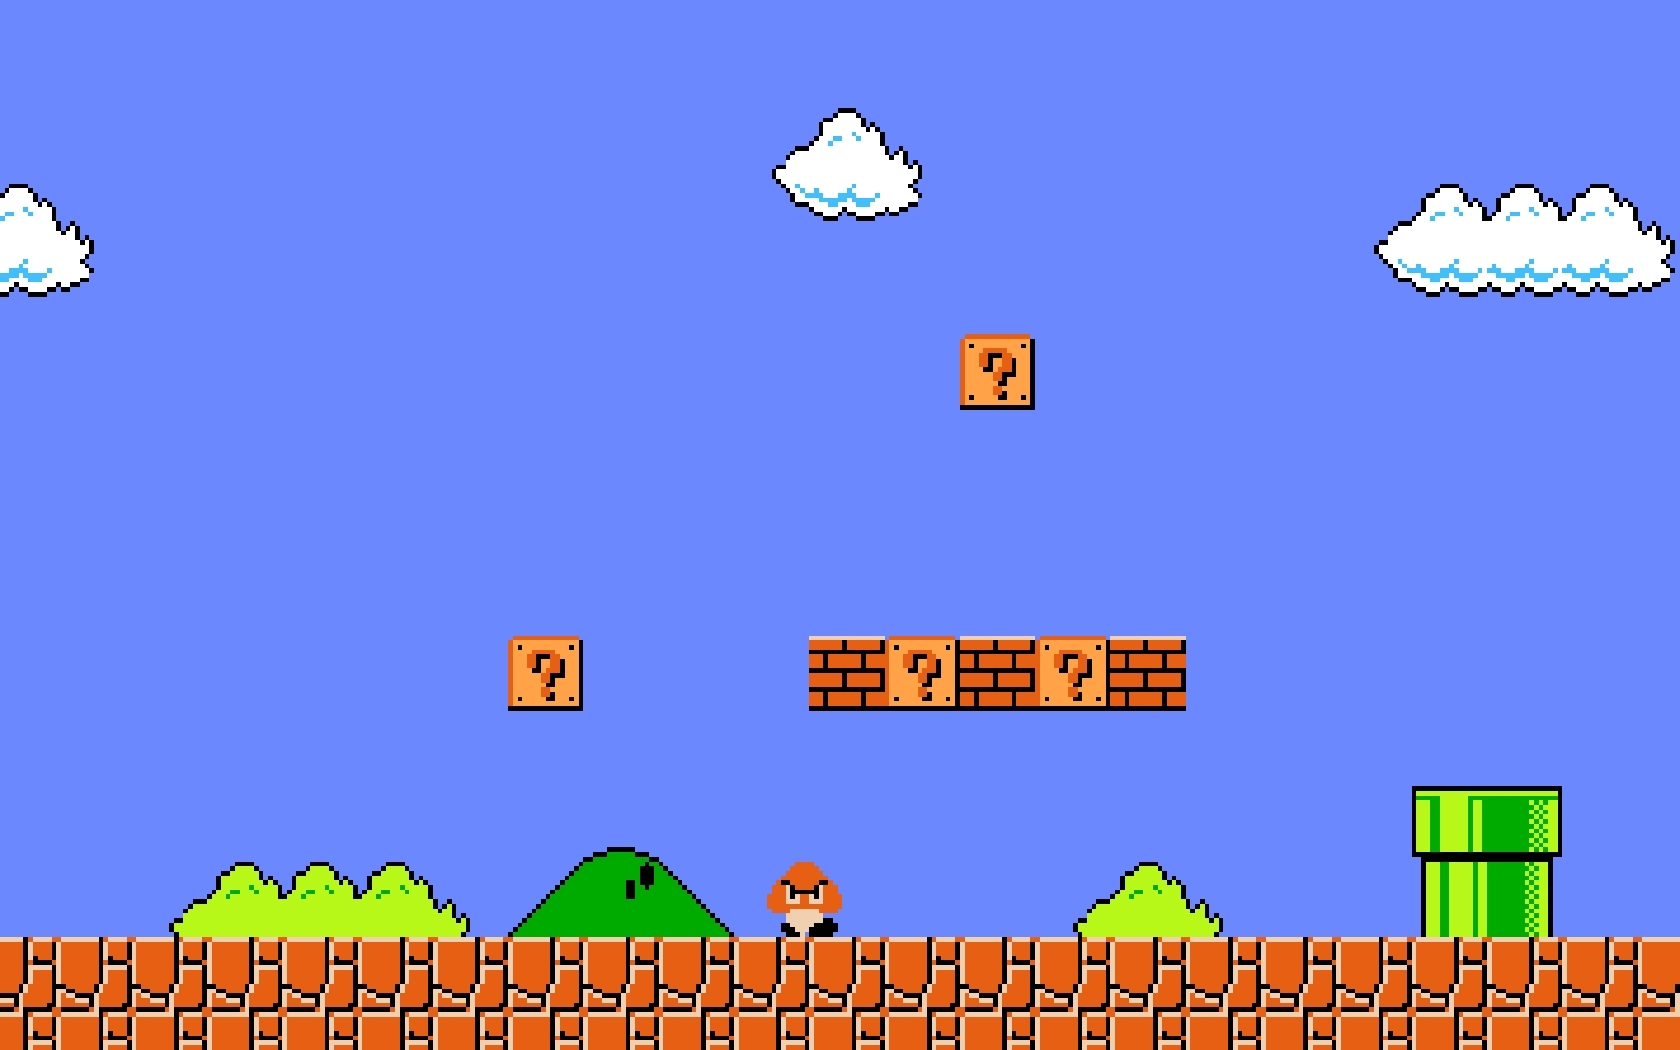 super mario bros background | mario bros project | pinterest | mario